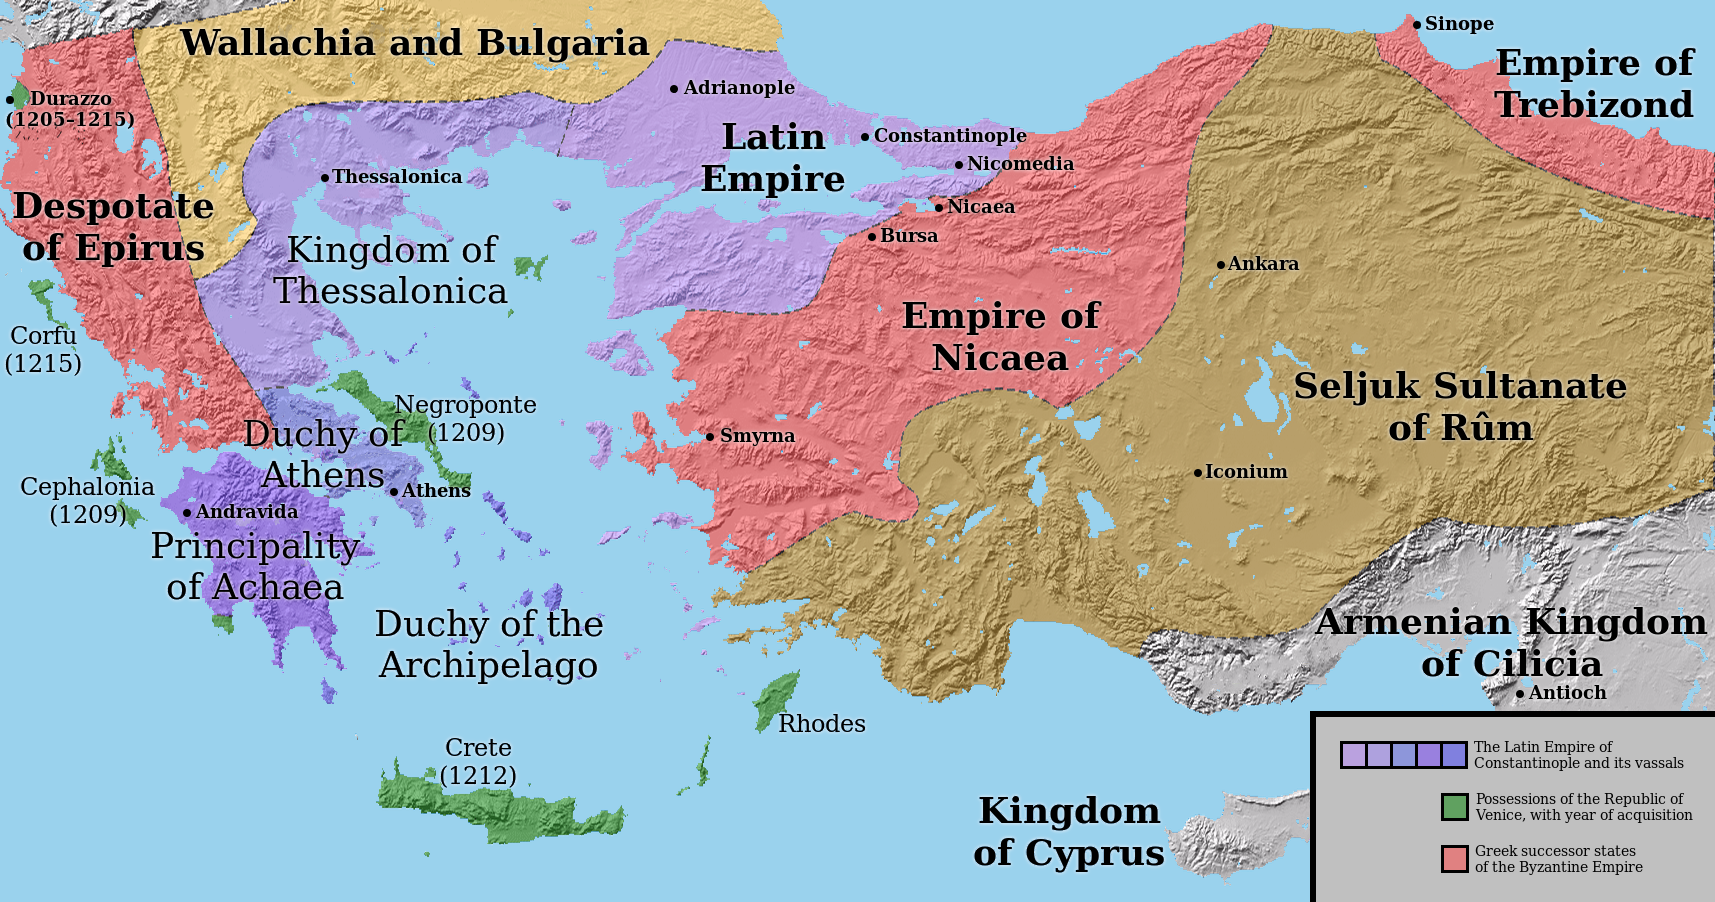 Map of Byzantium, Greece, Asia Minor, and Armenian Cilicia